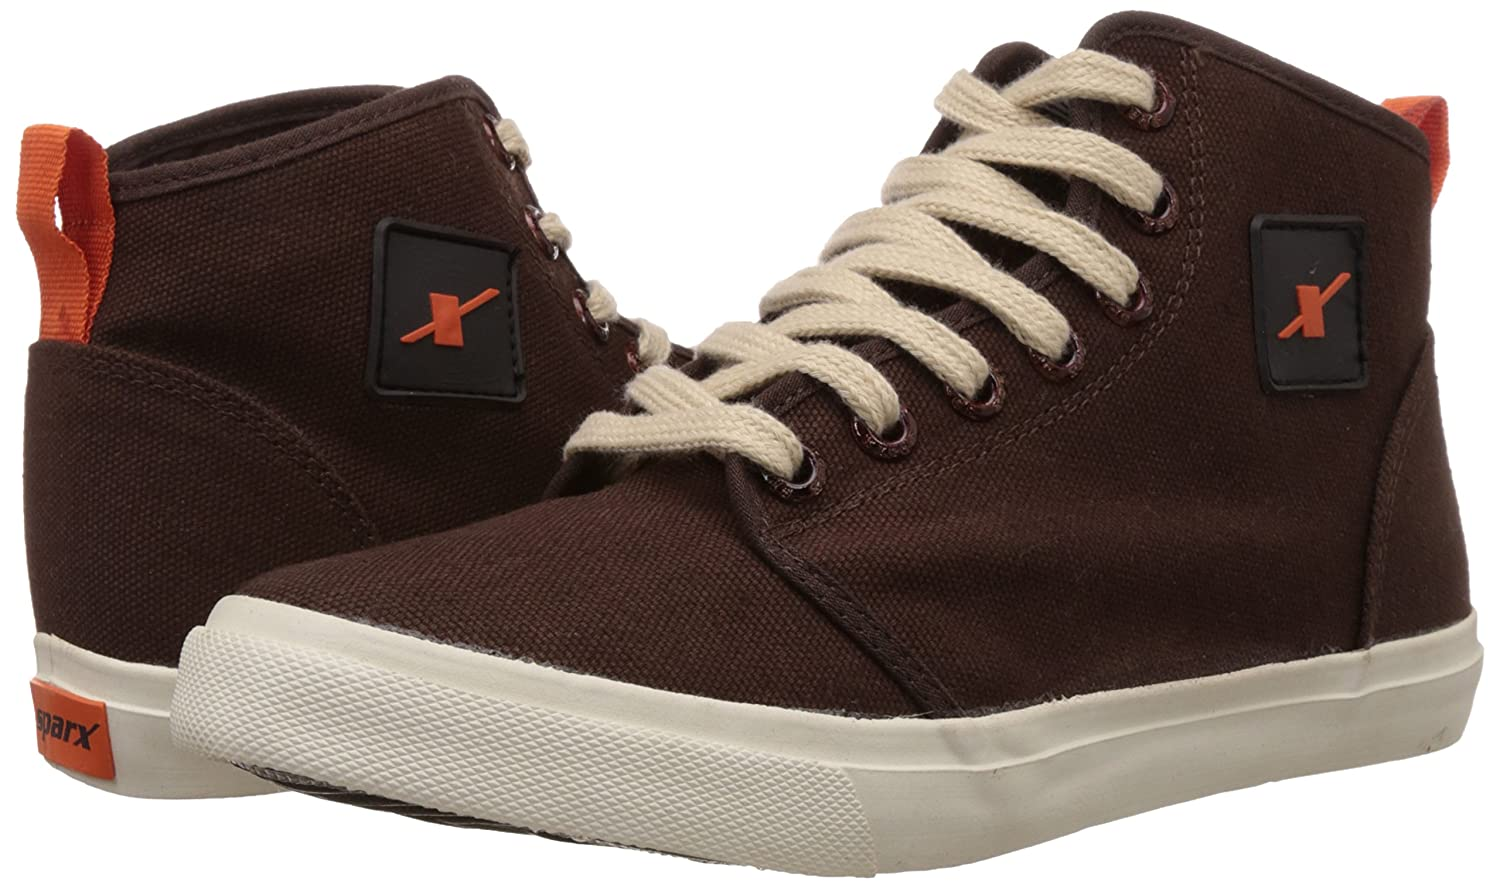 Sparx Men's Sneakers By Amazon @ Rs.944